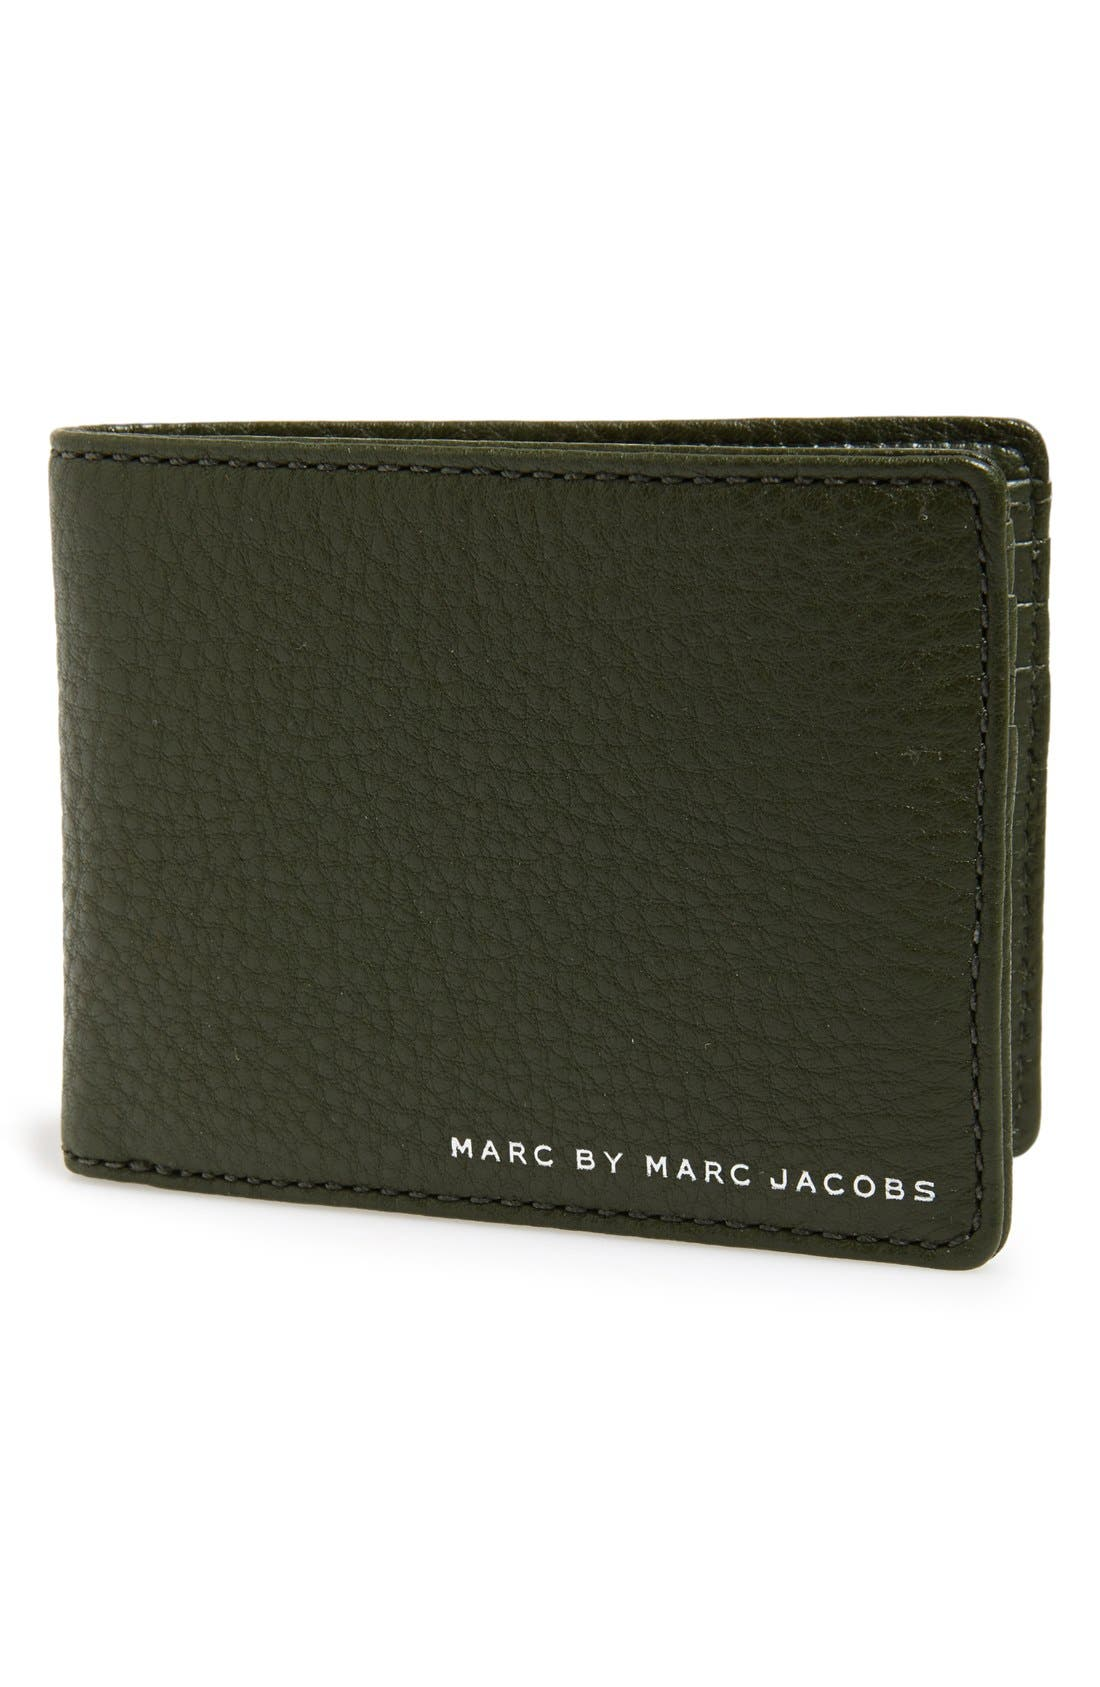 Main Image - MARC BY MARC JACOBS Leather Billfold Wallet